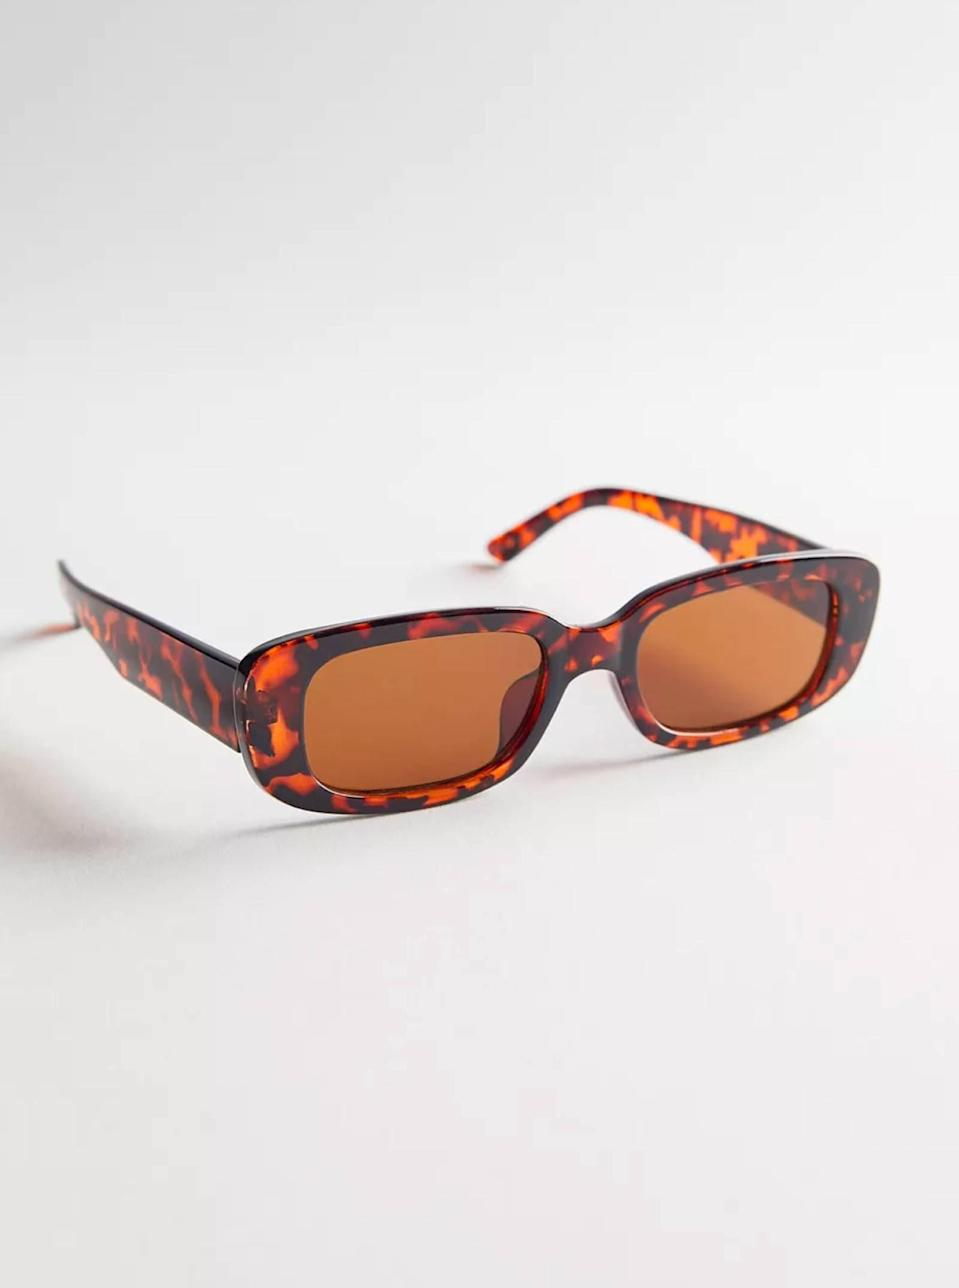 """$16, Urban Outfitters. <a href=""""https://www.urbanoutfitters.com/shop/sabrina-rectangle-sunglasses?"""" rel=""""nofollow noopener"""" target=""""_blank"""" data-ylk=""""slk:Get it now!"""" class=""""link rapid-noclick-resp"""">Get it now!</a>"""